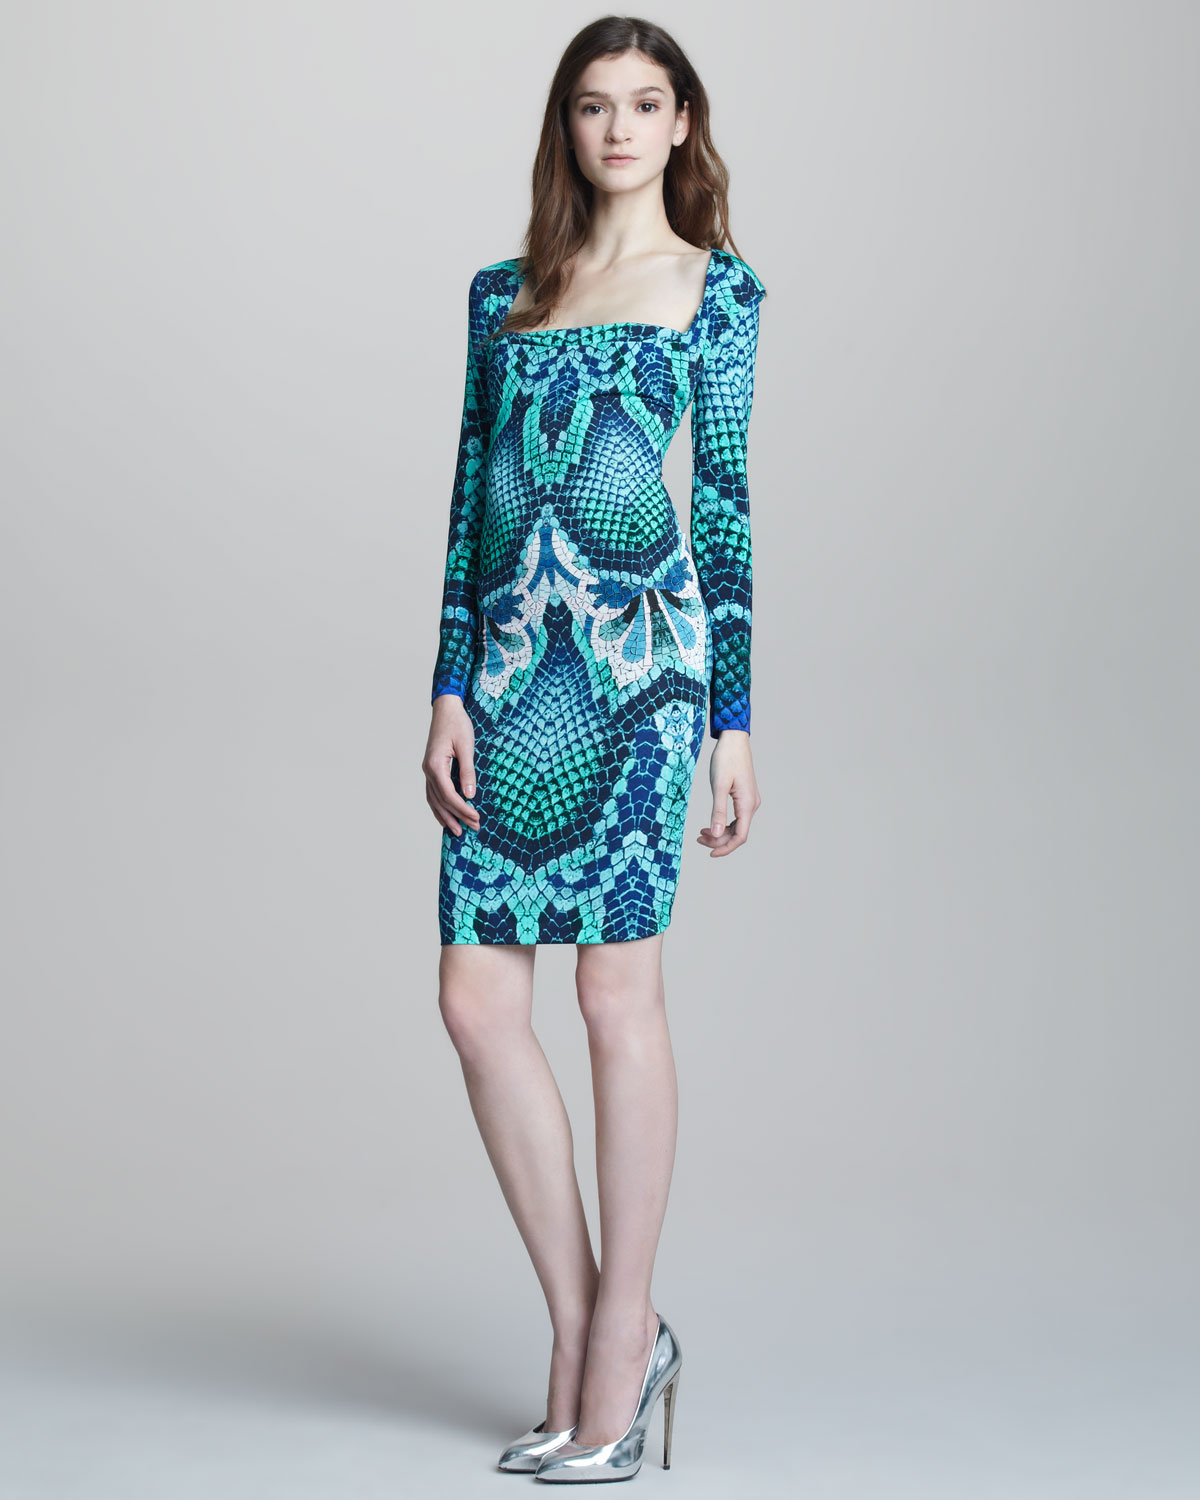 Lyst - Just Cavalli Snake-Print Long-Sleeve Dress in Blue